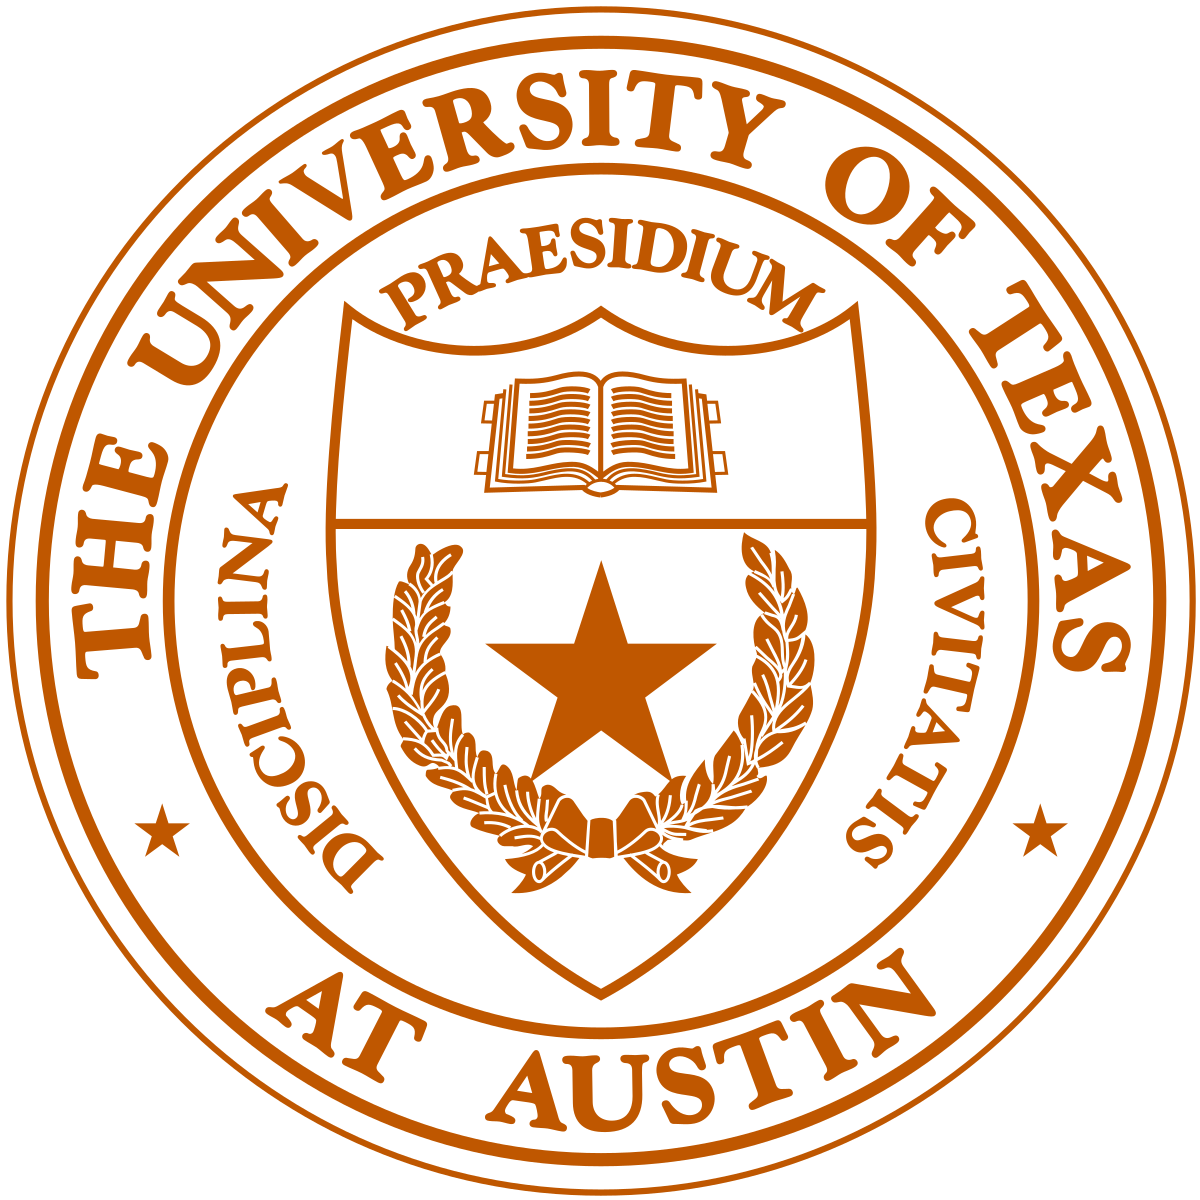 Texas bell tower logo png. University of at austin